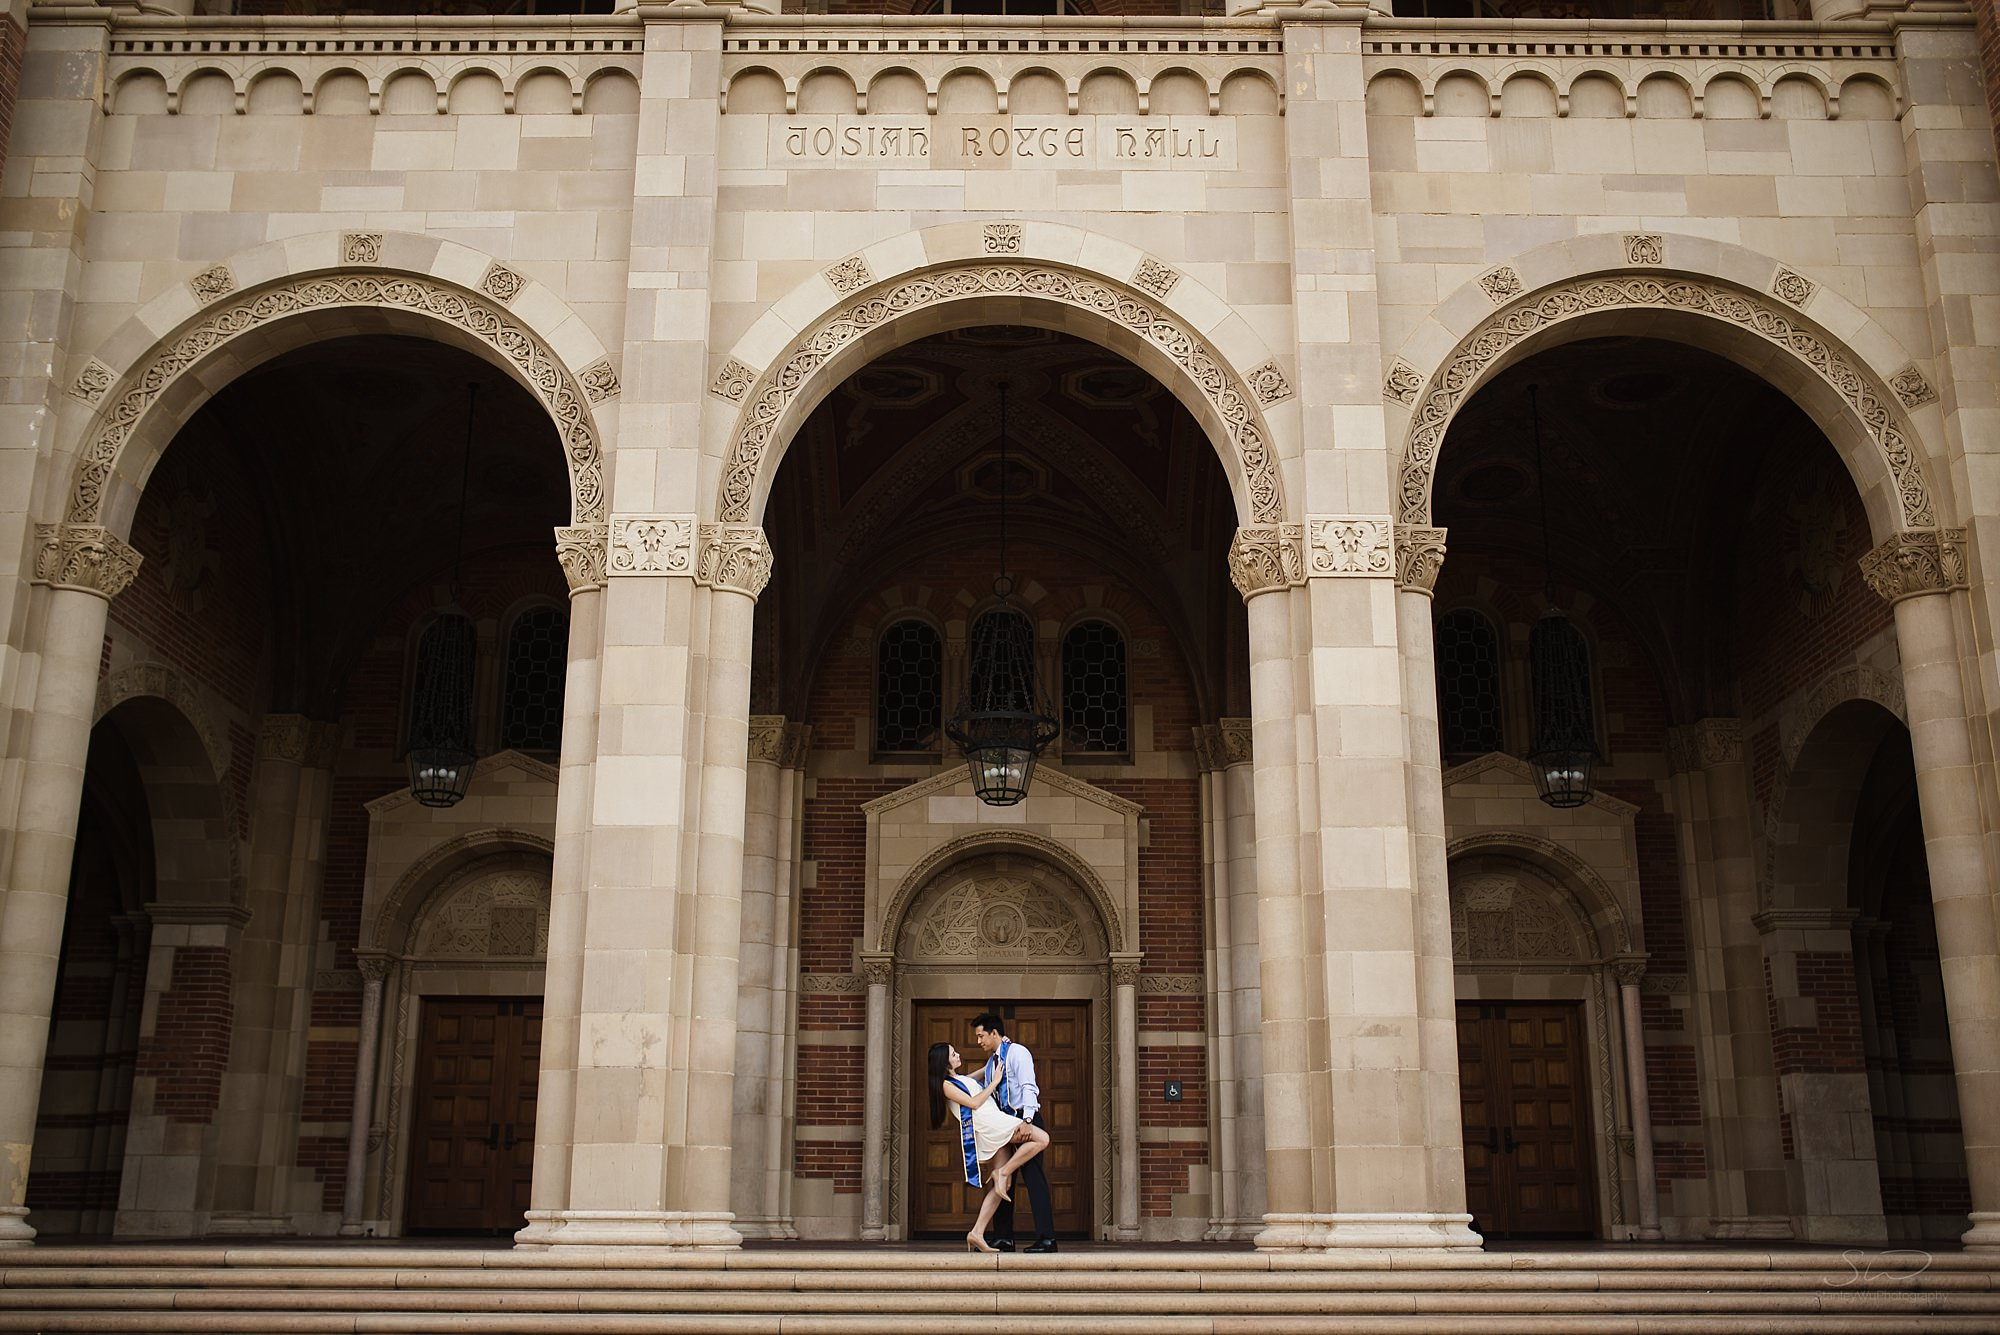 los angeles graduation senior portrait ucla epic architectural photo with couple in love kissing